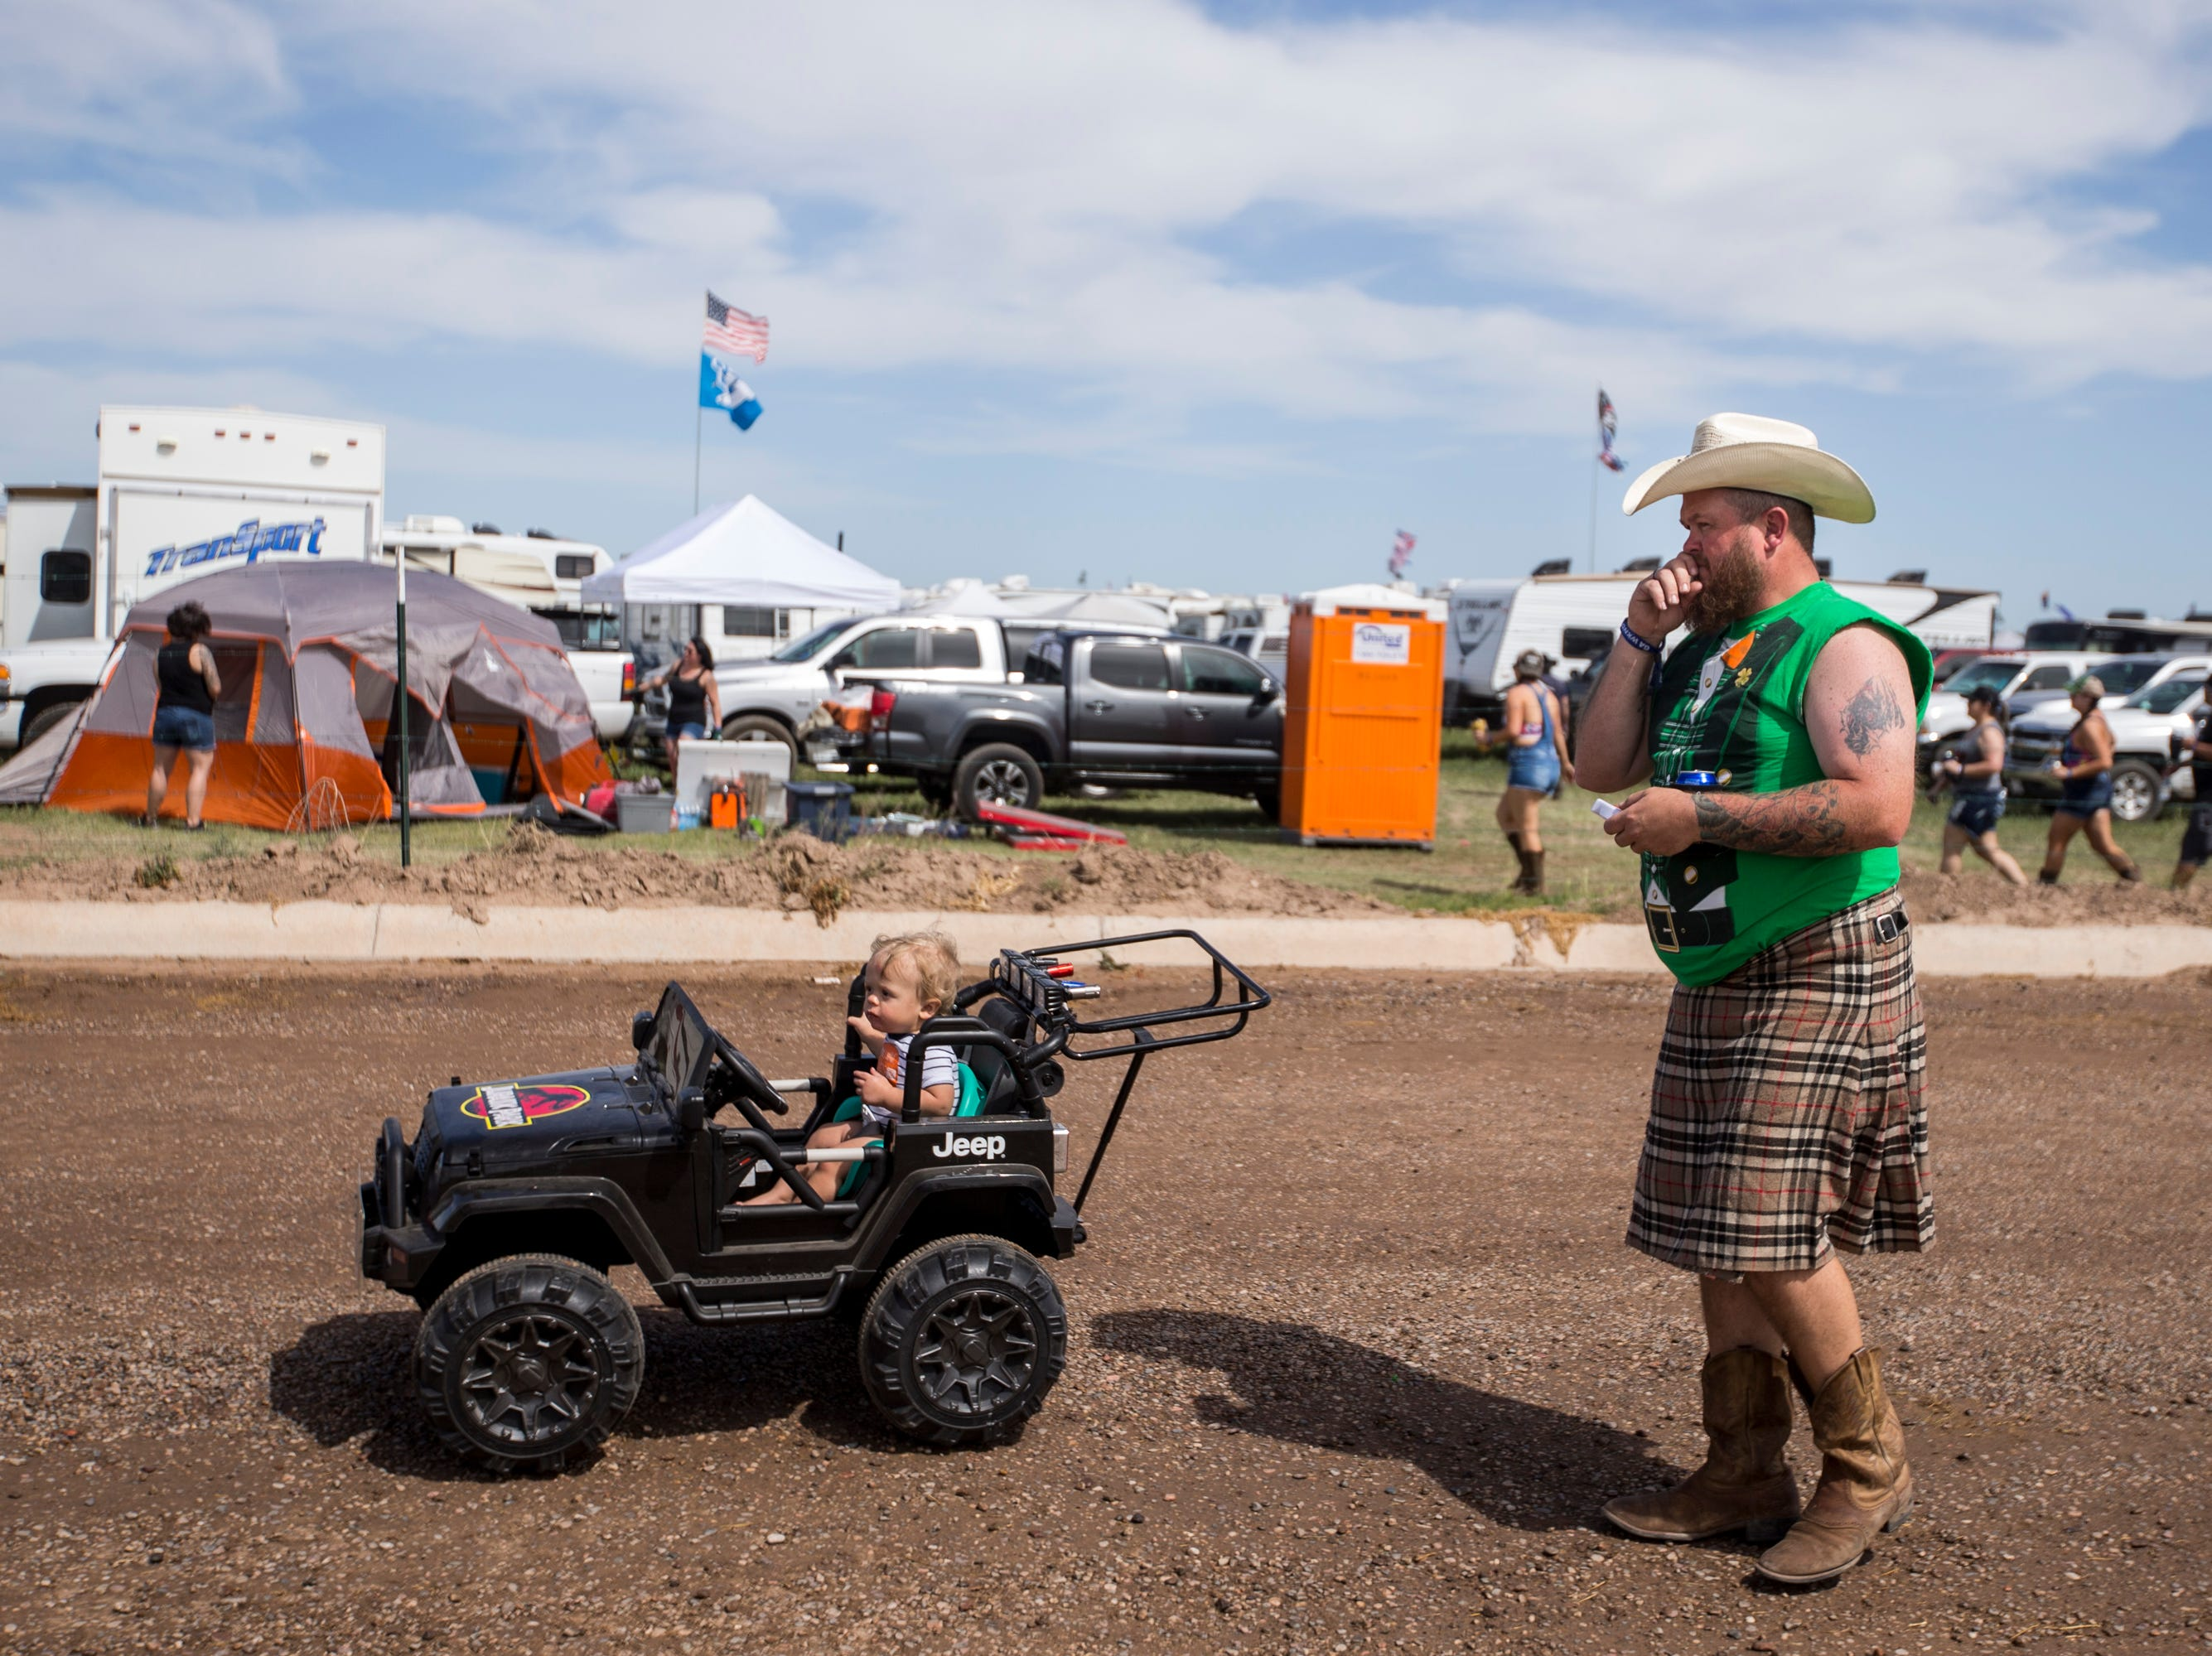 Sean Dwyer drives a motorized toy car with his son, Malakai, on April 11, 2019, during Day 1 of Country Thunder Arizona in Florence.